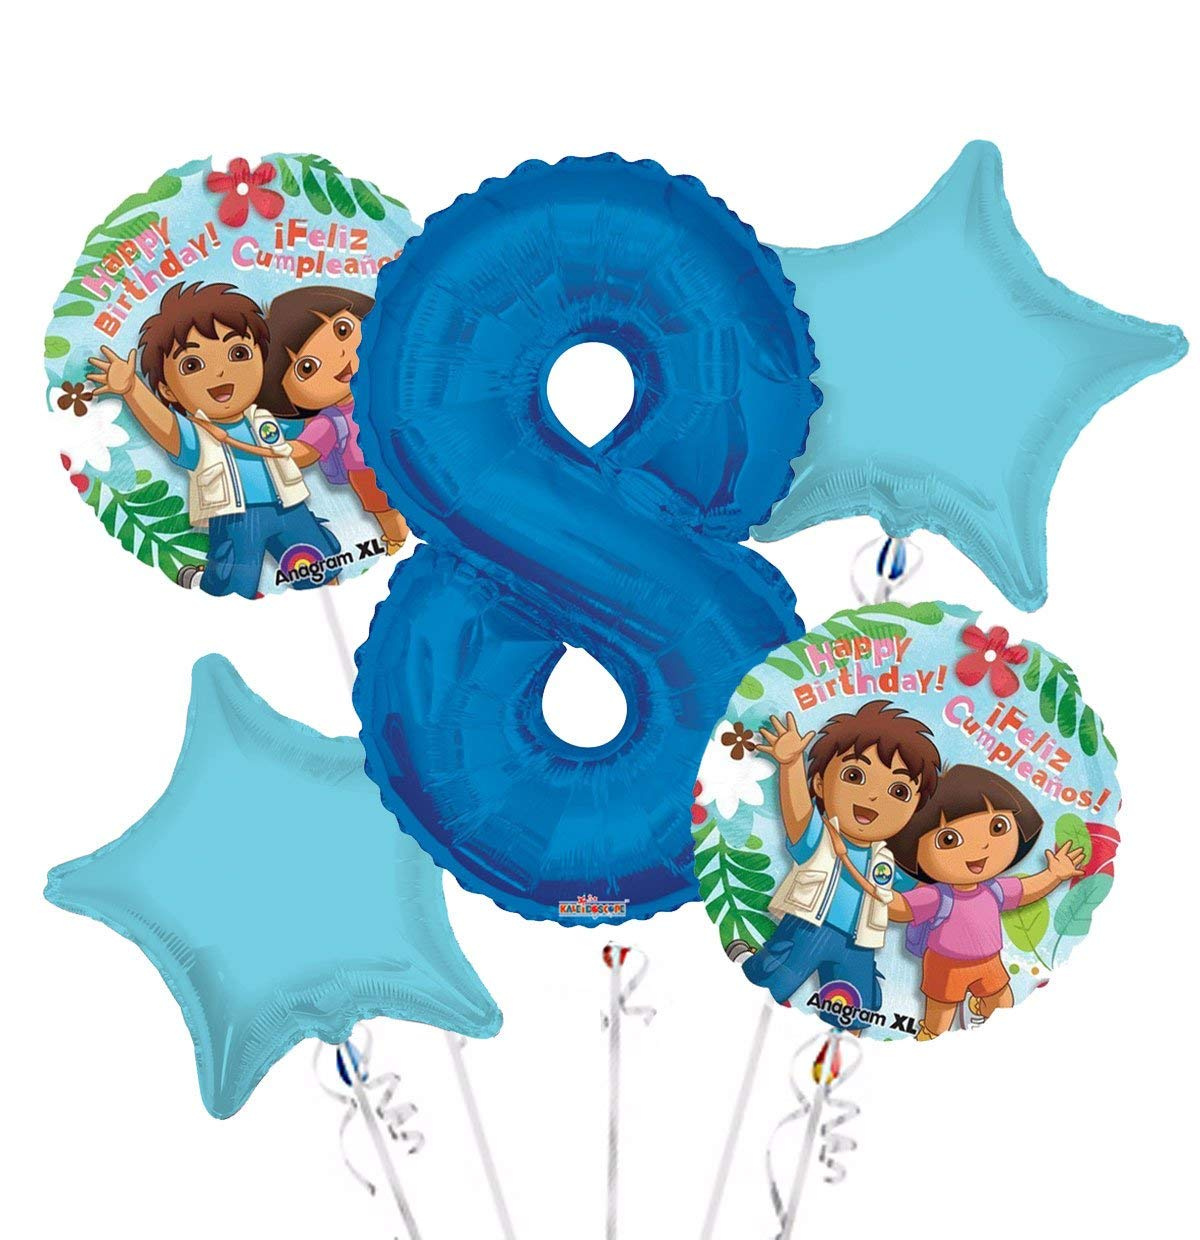 Dora Balloon Bouquet 8th Birthday 5 Pcs Party Supplies By Viva Party Shop Online For Arts Crafts In Italy